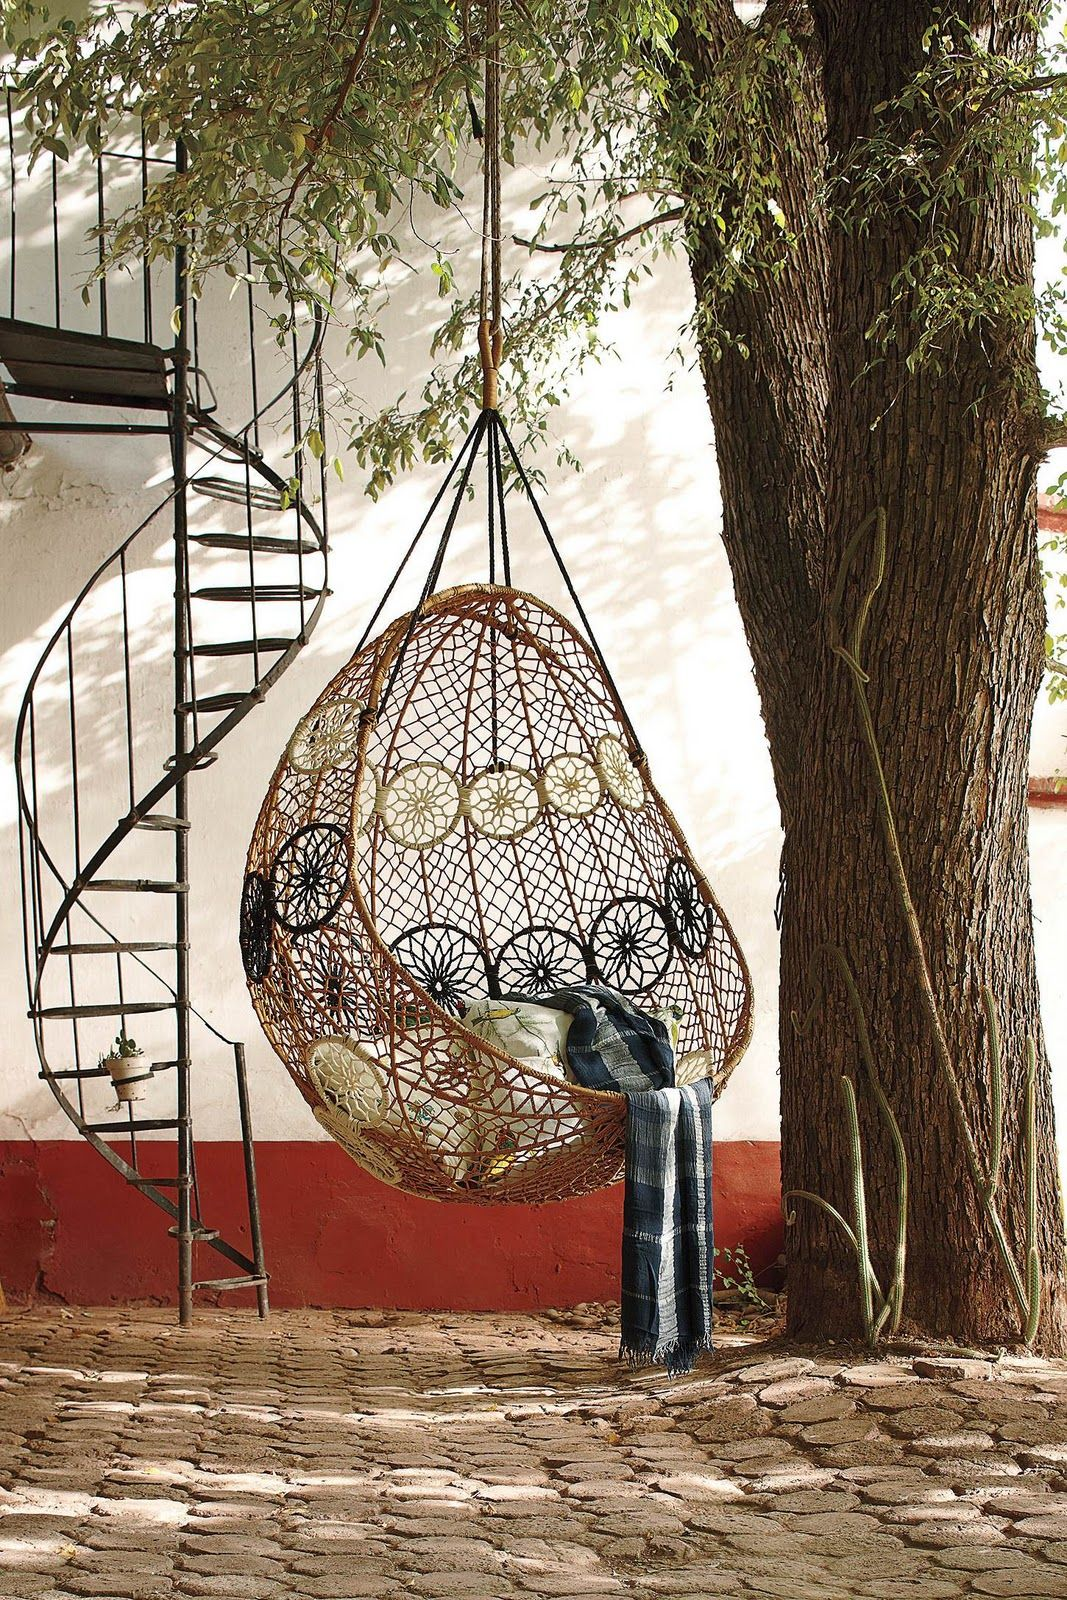 let u0027s stay  where to buy a swing hammock chair for your room someday   let u0027s stay  where to buy a swing hammock chair for your      rh   pinterest   au